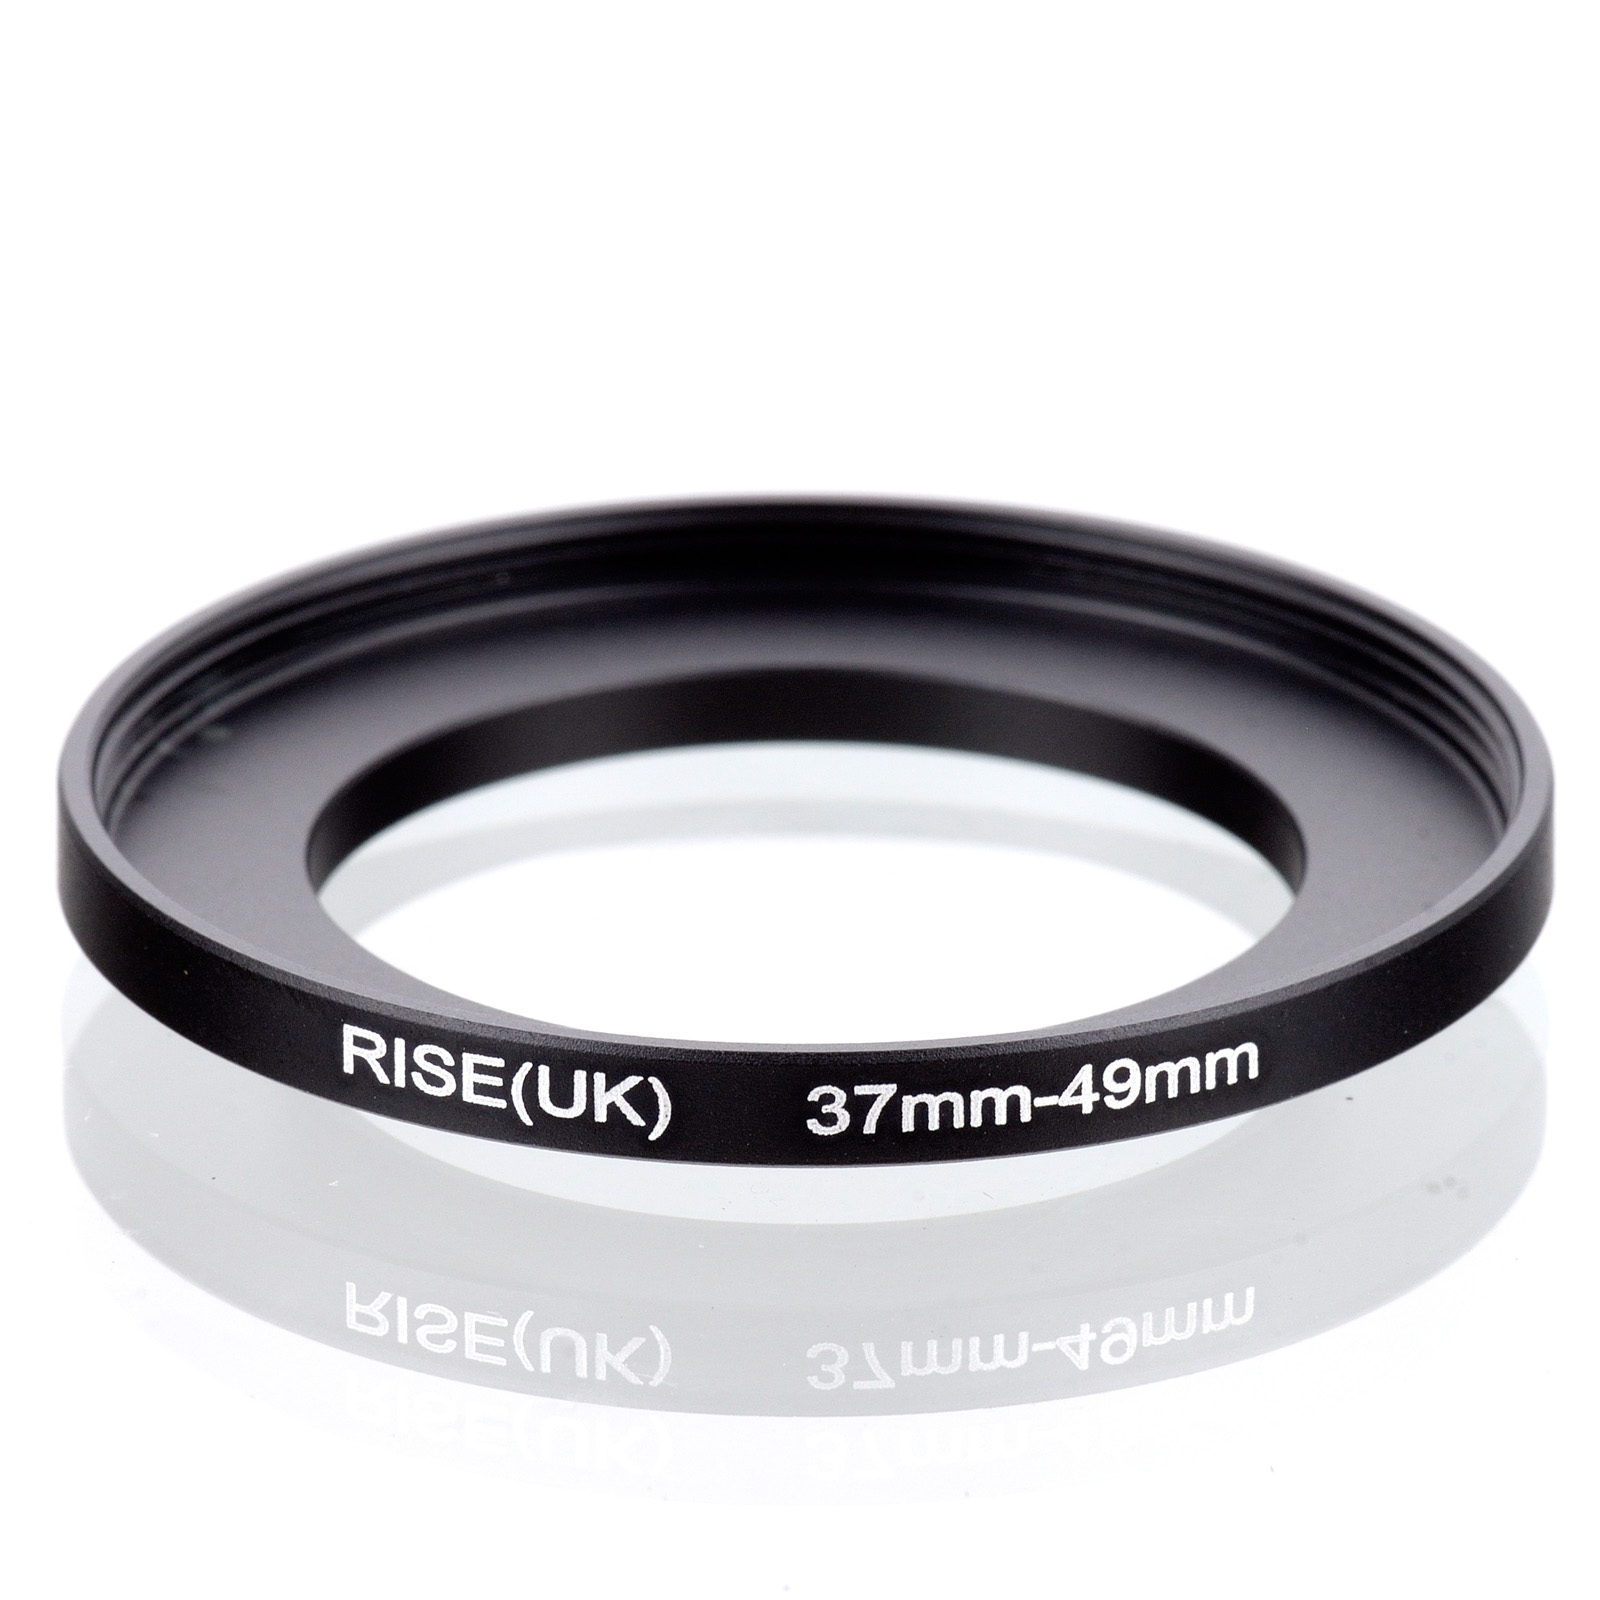 RISE(UK) 37mm-49mm 37-49 Mm 37 To 49 Step Up Filter Ring Adapter